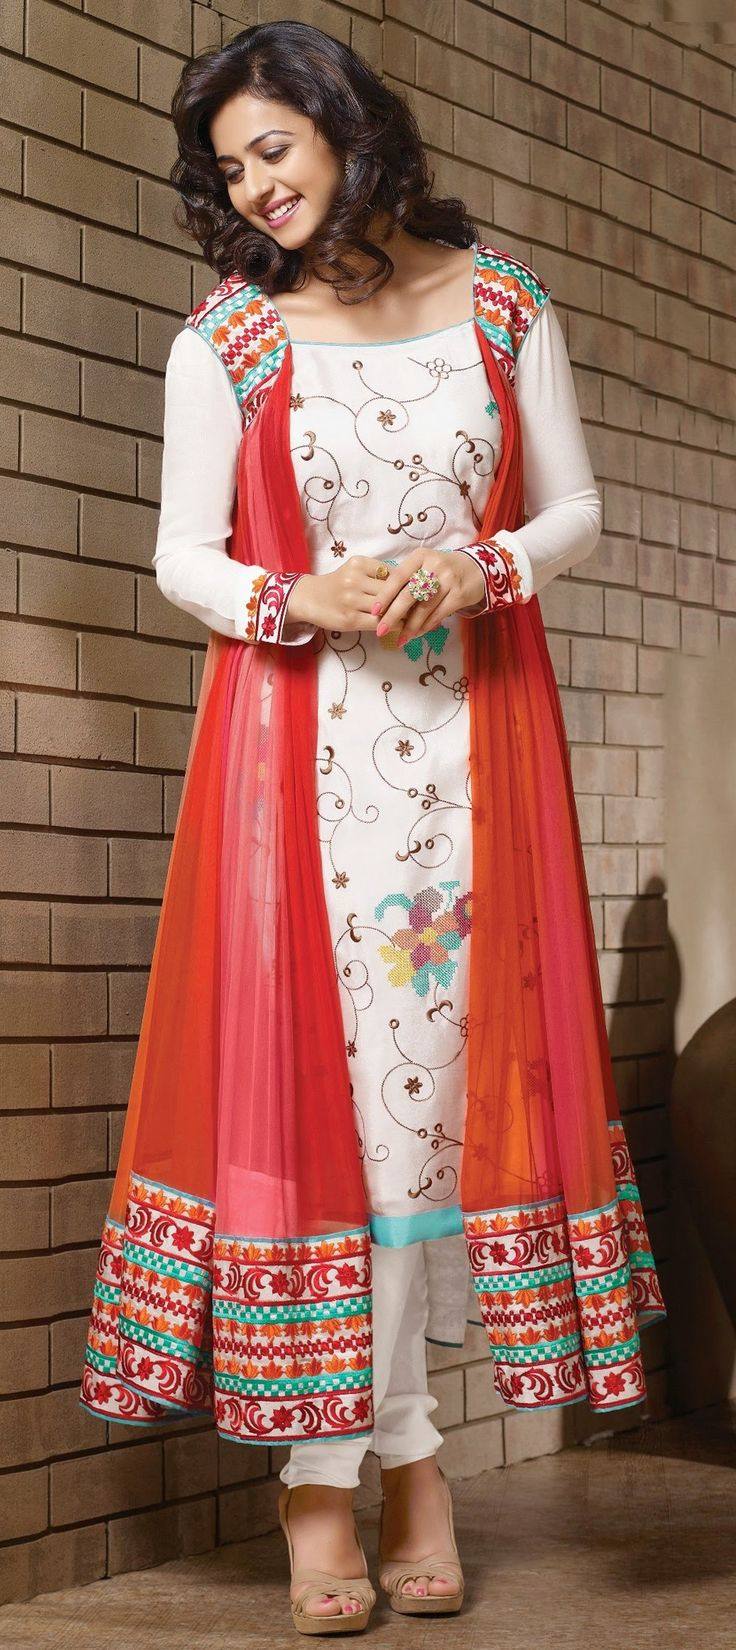 410774: Red and Maroon,White and Off White color family stitched Bollywood Salwar Kameez .